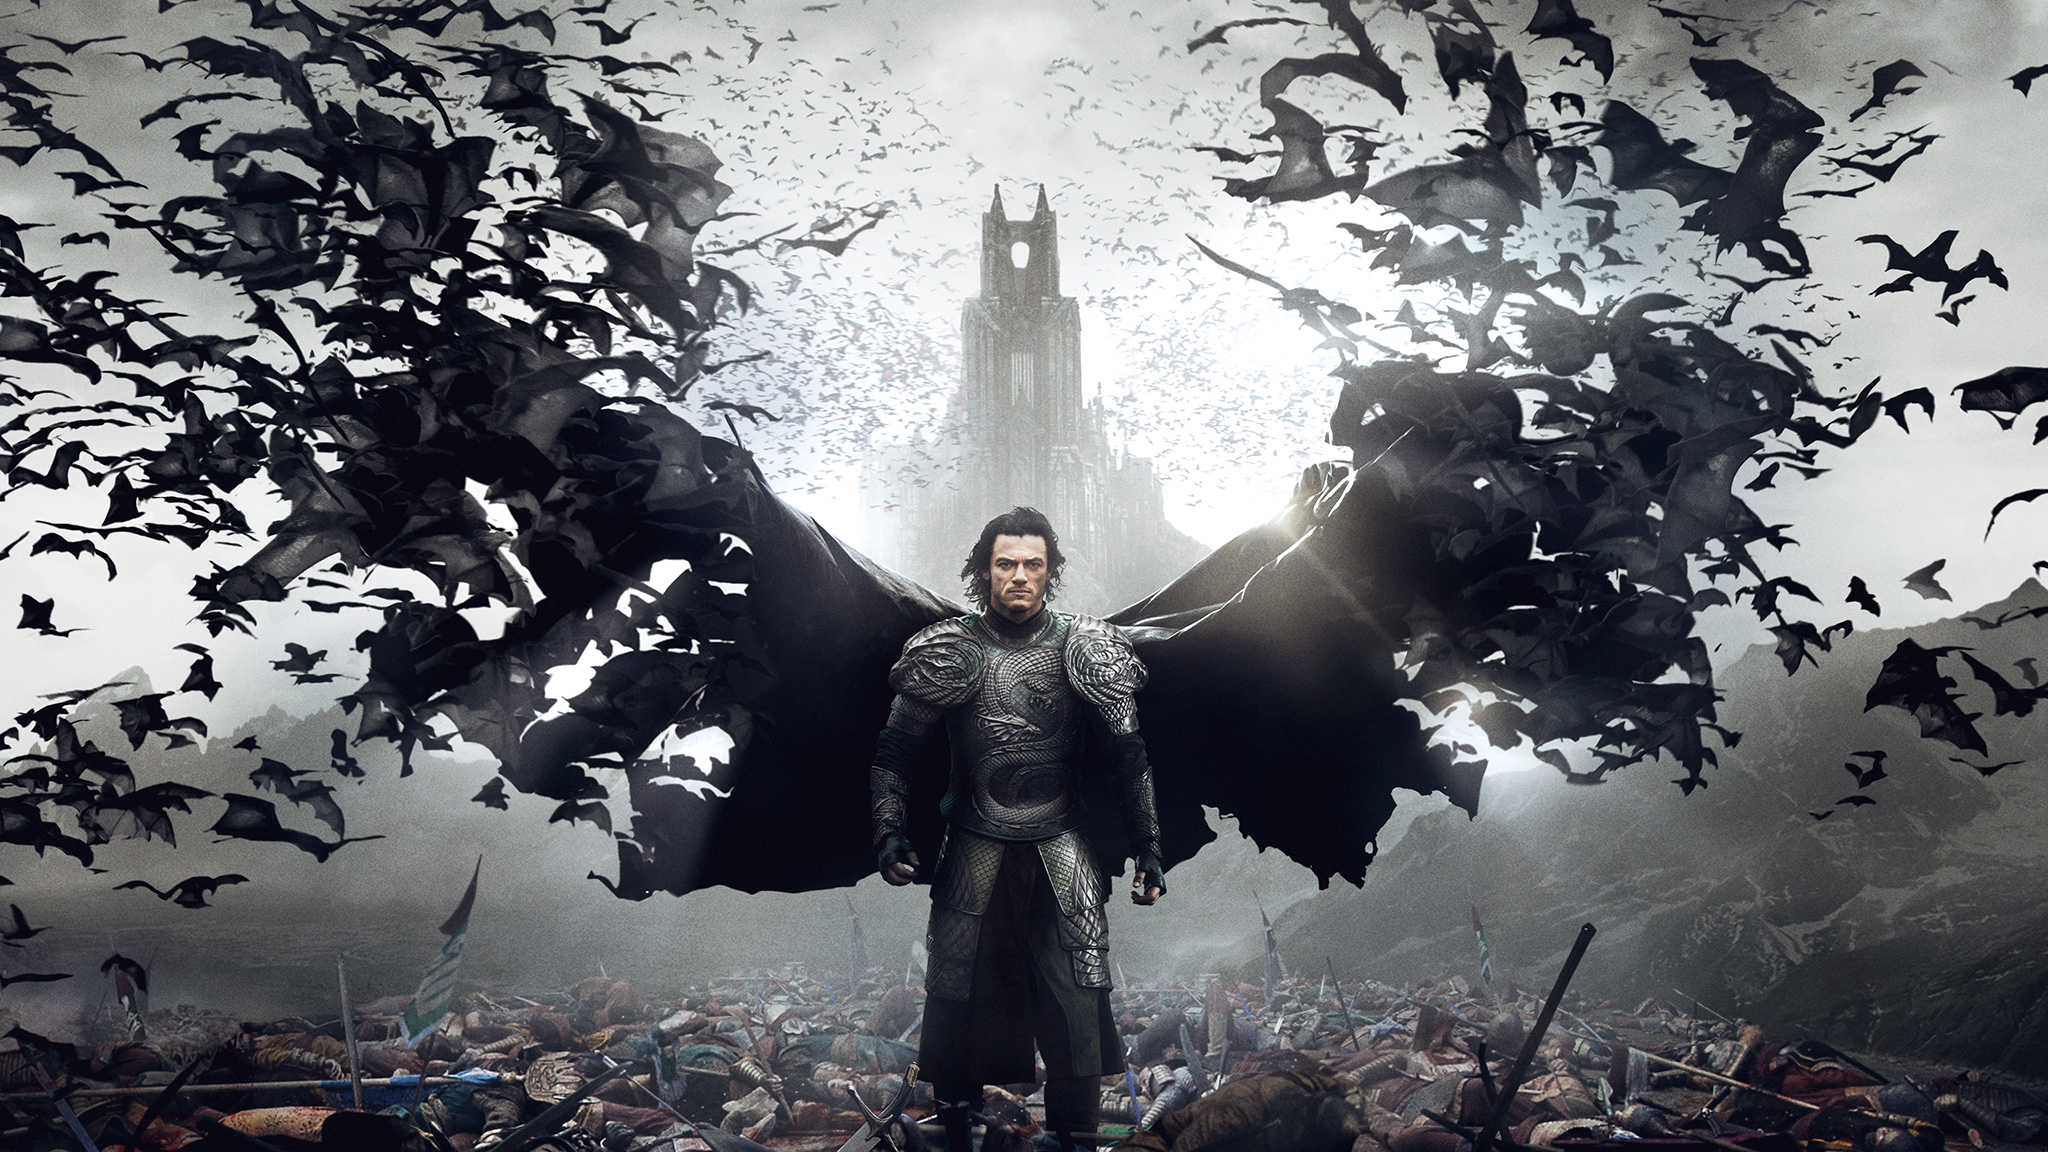 Dracula Untold Retina Movie Wallpaper: 16 Dracula Untold HD Wallpapers